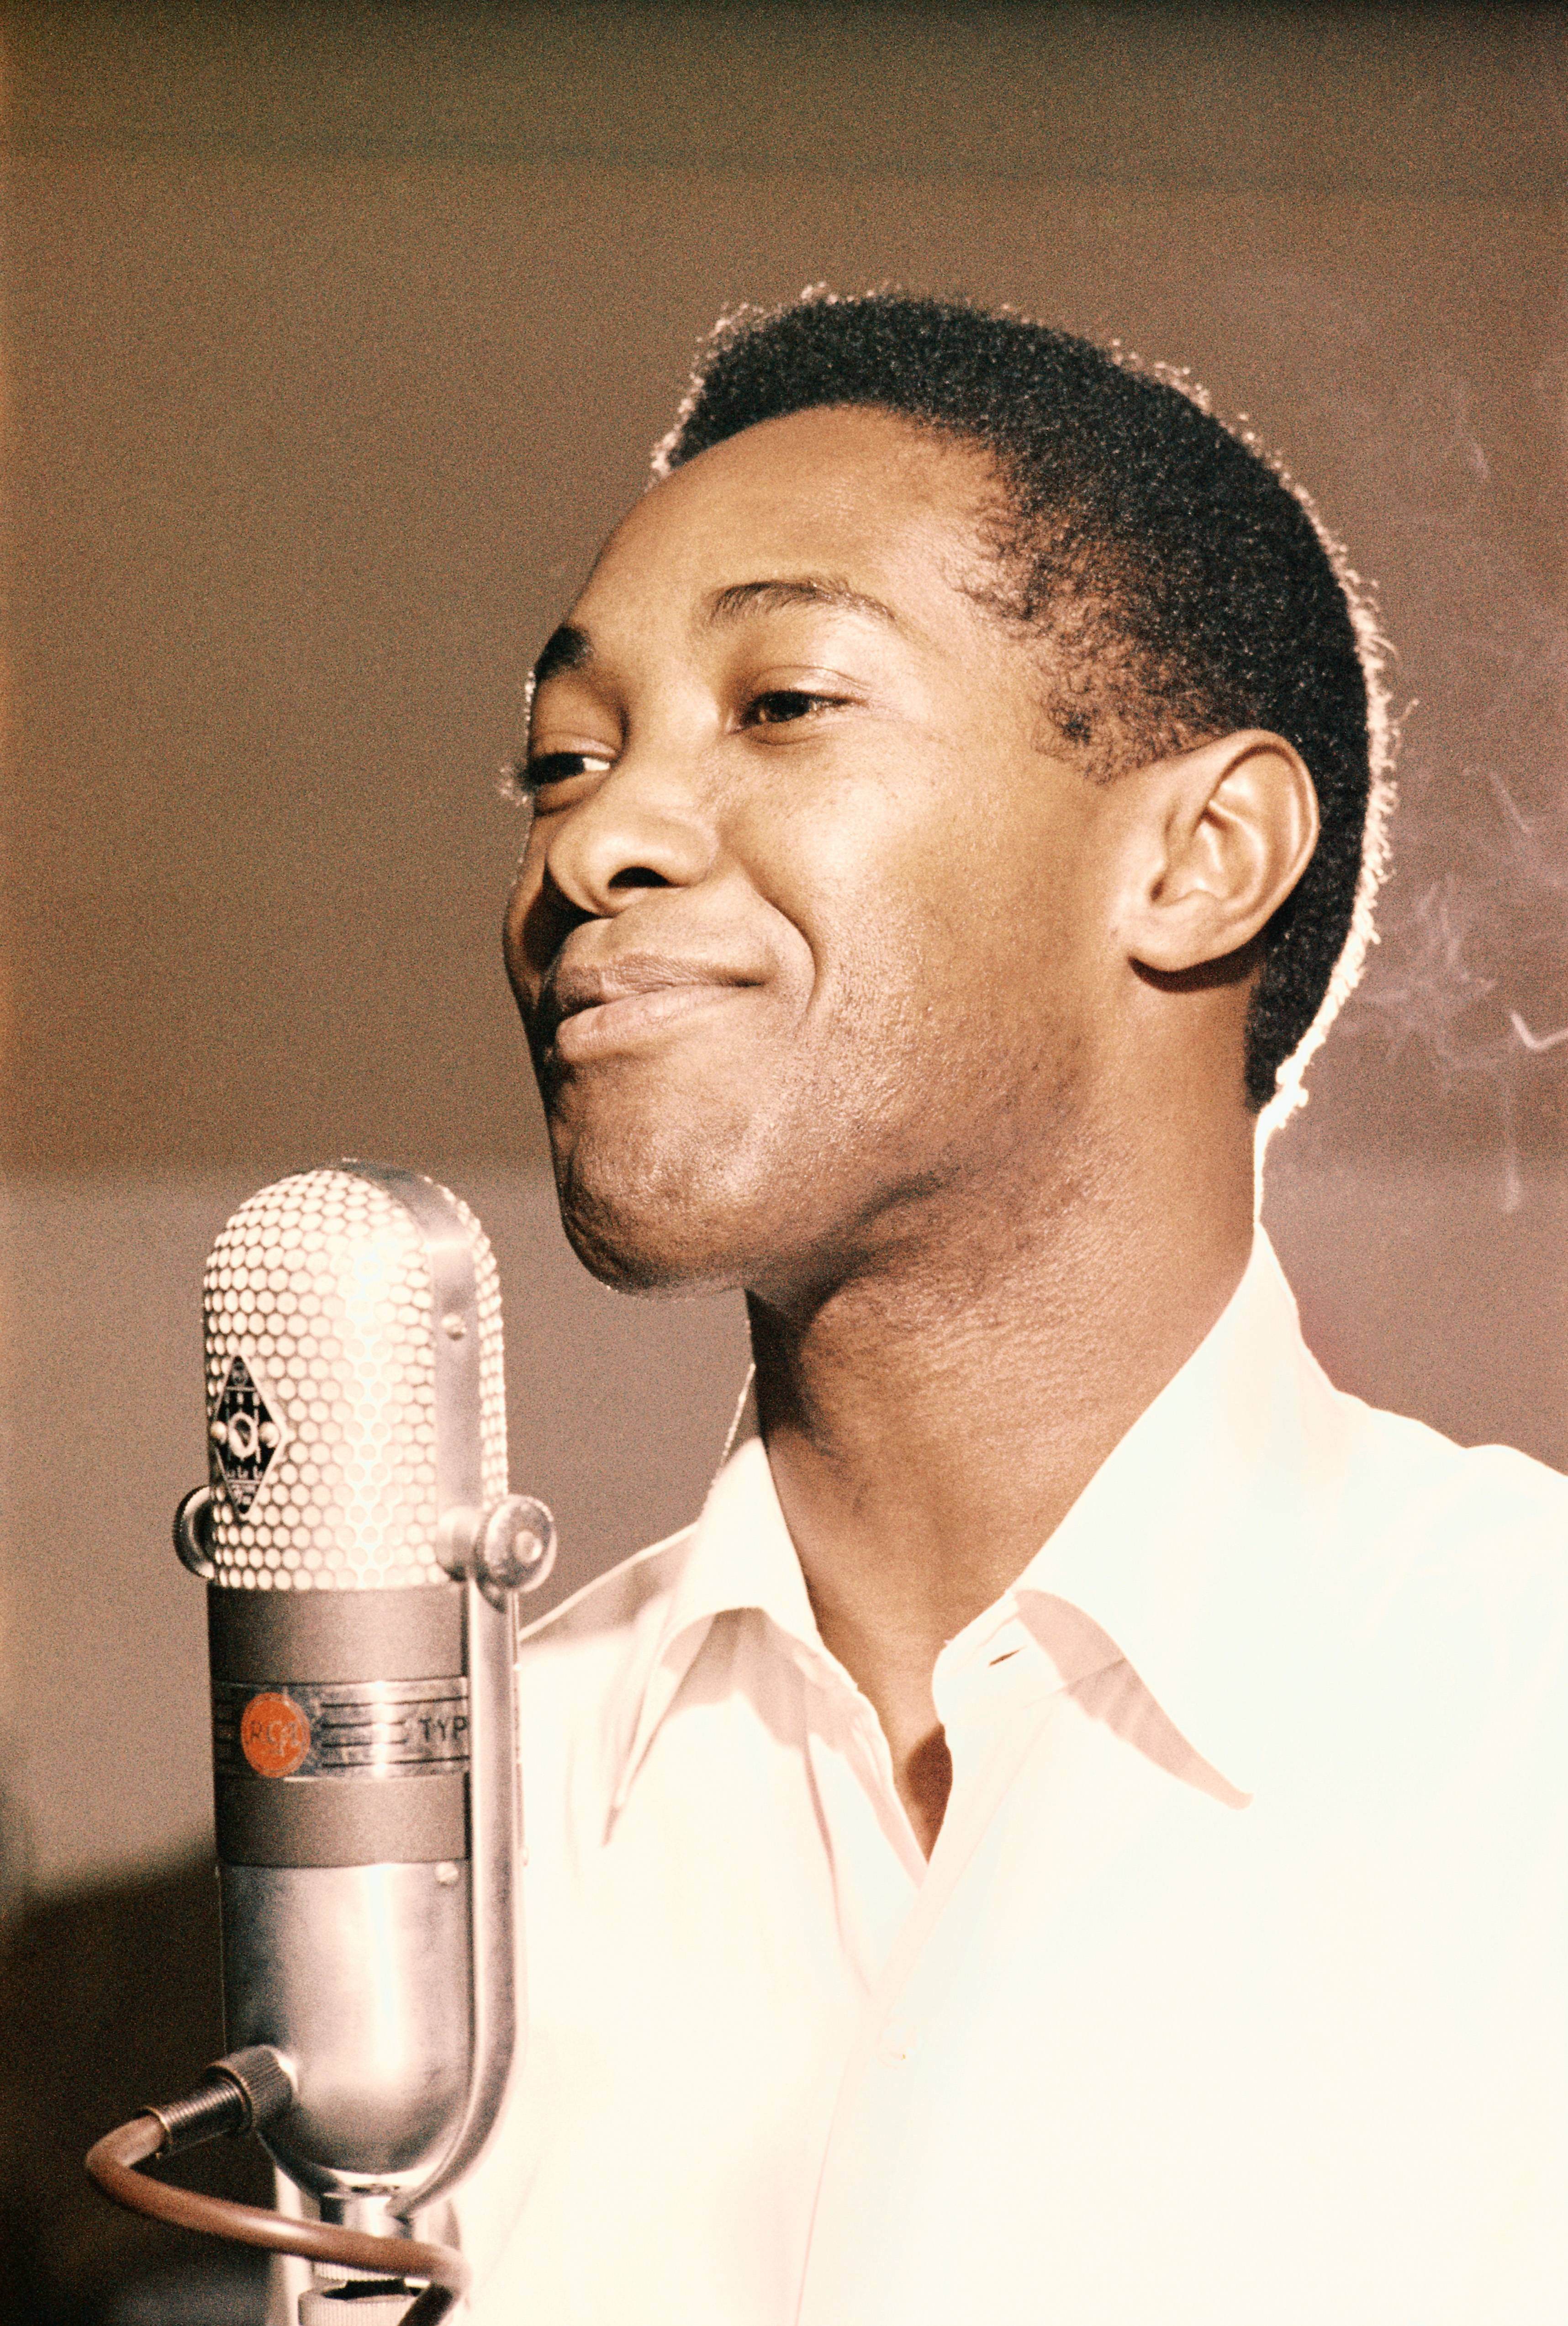 A Change Is Gonna Come - A film on the life of late soul singer Sam Cooke has been green-lit with producer Romeo Antonio.Cooke ran the '50s and '60s with chart-toppers like ?A Change Is Gonna Come,? ?Cupid,? ?You Send Me? and ?Chain Gang? and was one of the first artists to own his own label after growing tired of being swindled by record companies.With Cooke?s family and friends on board as consultants for the authorized work, the movie will also take a look at his controversial murder at the age of 33.(Photo: Michael Ochs Archives/Getty Images)